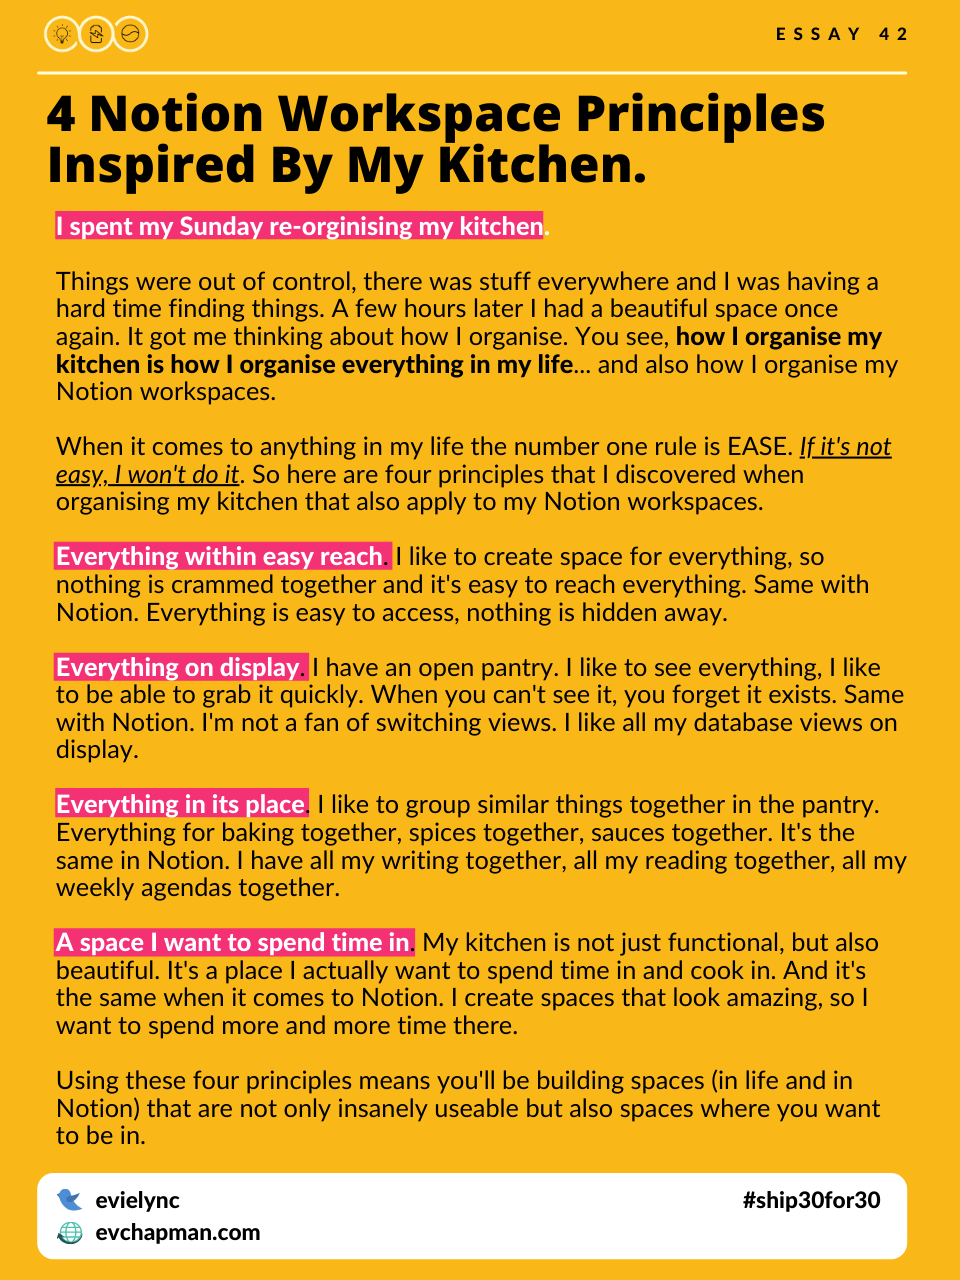 4 Notion Workspace Principles Inspired By My Kitchen